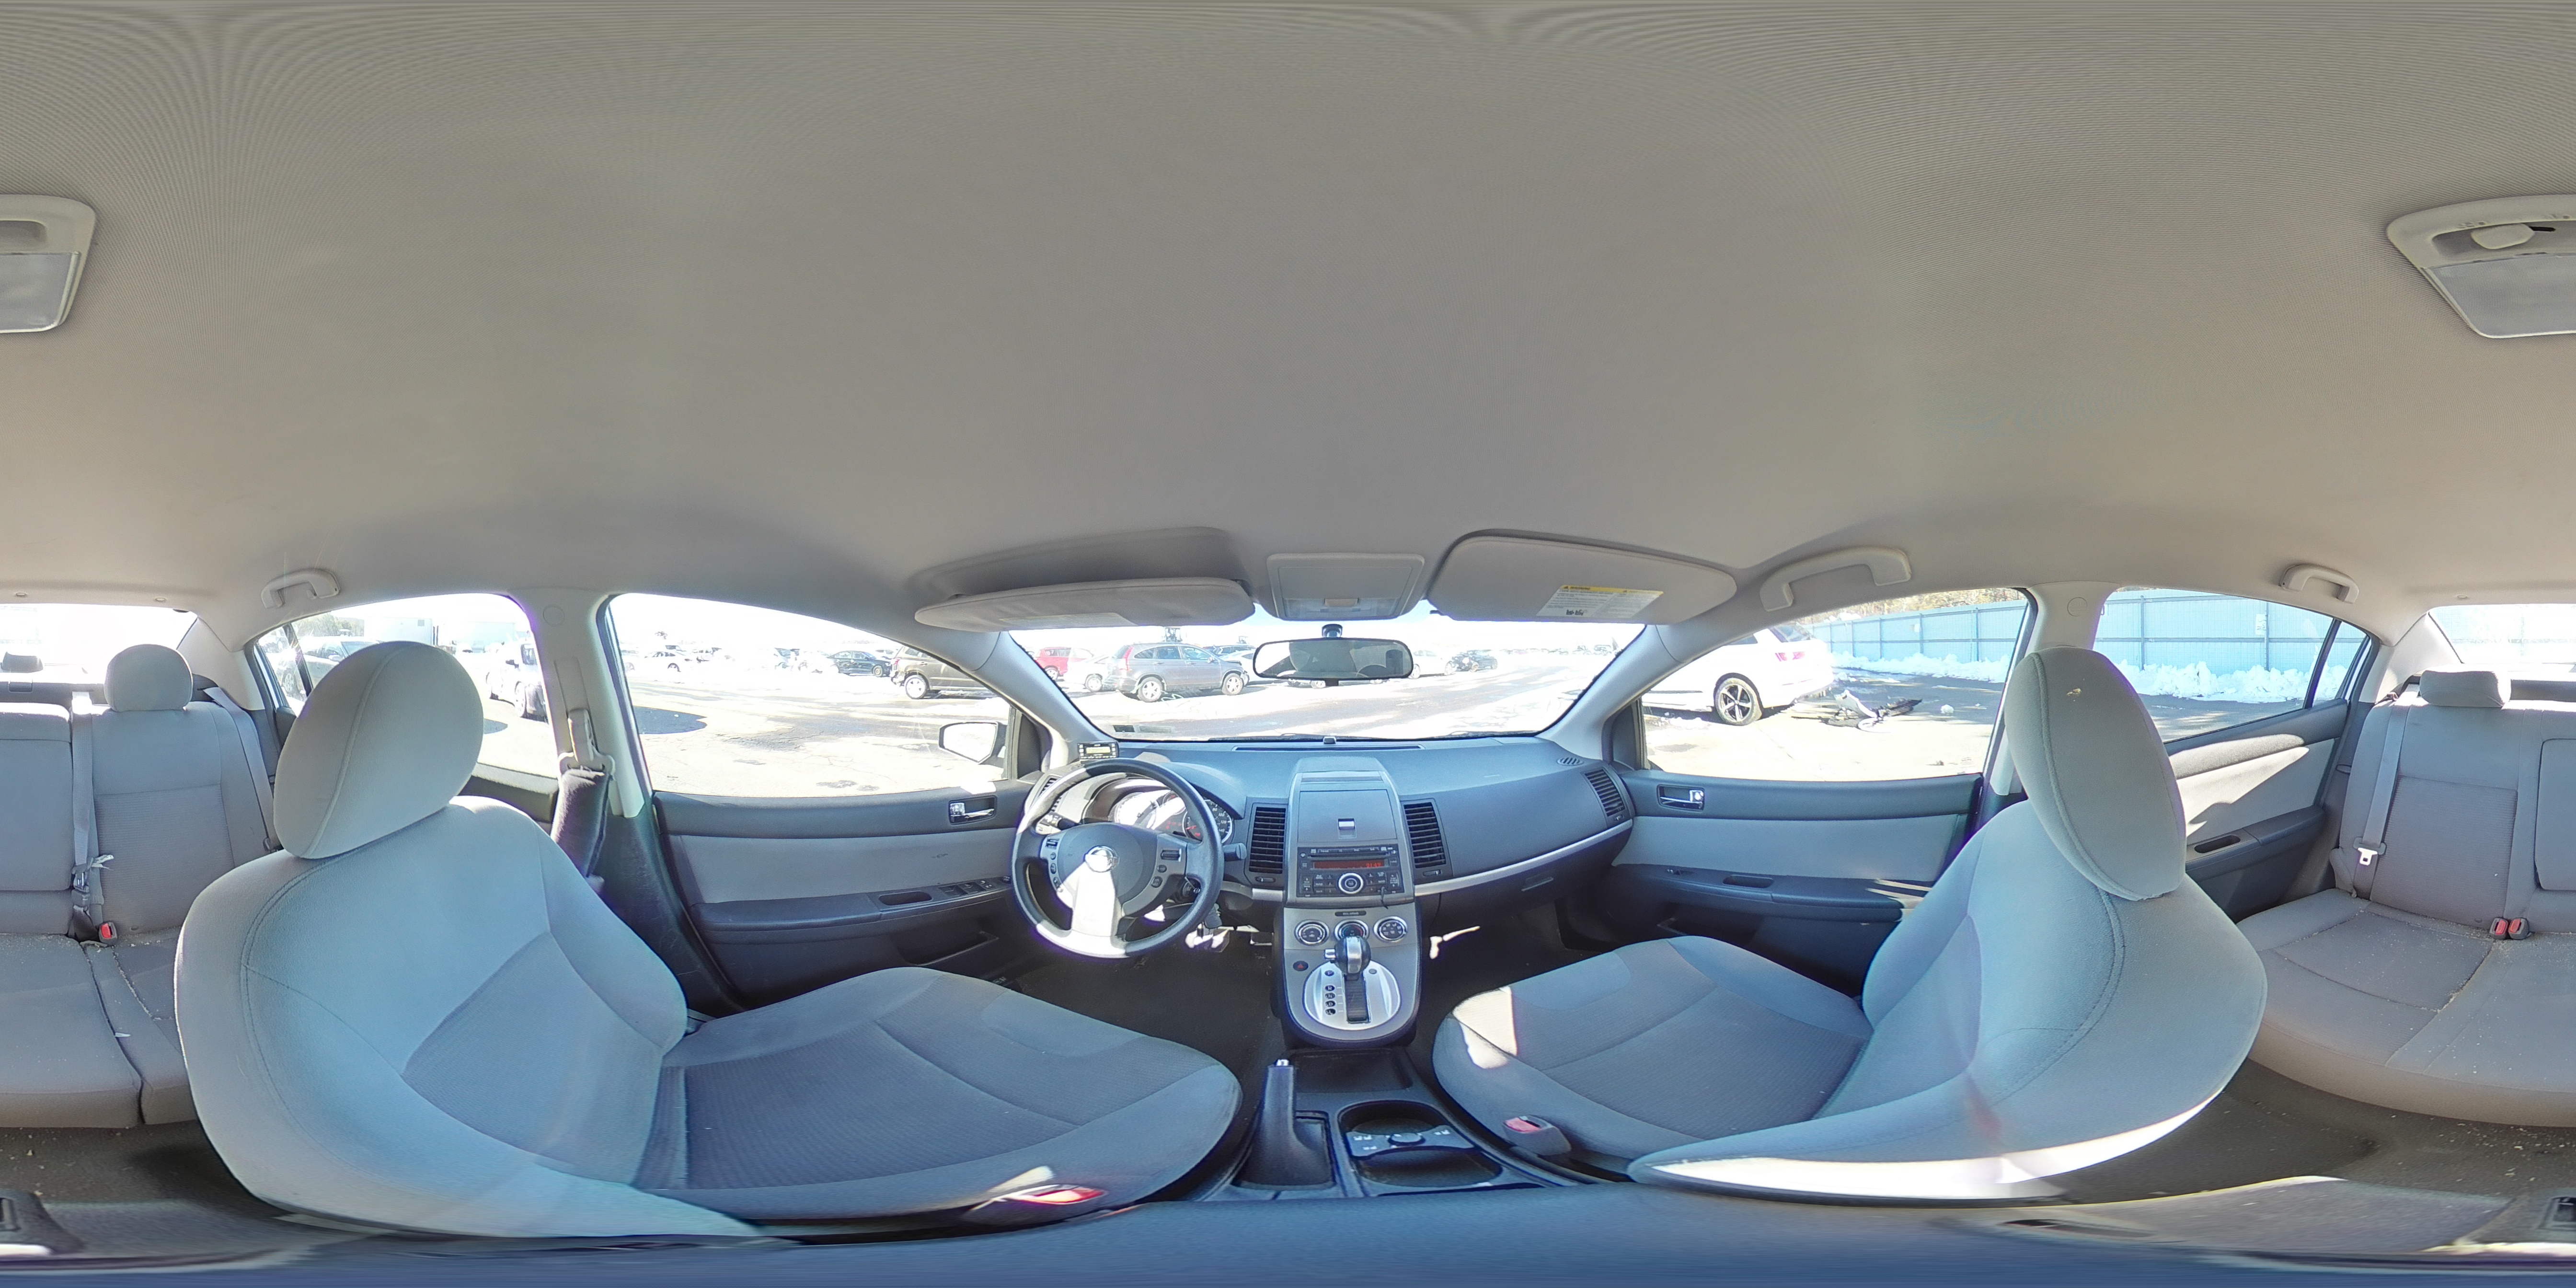 2010 NISSAN SENTRA 2.0 - Other View